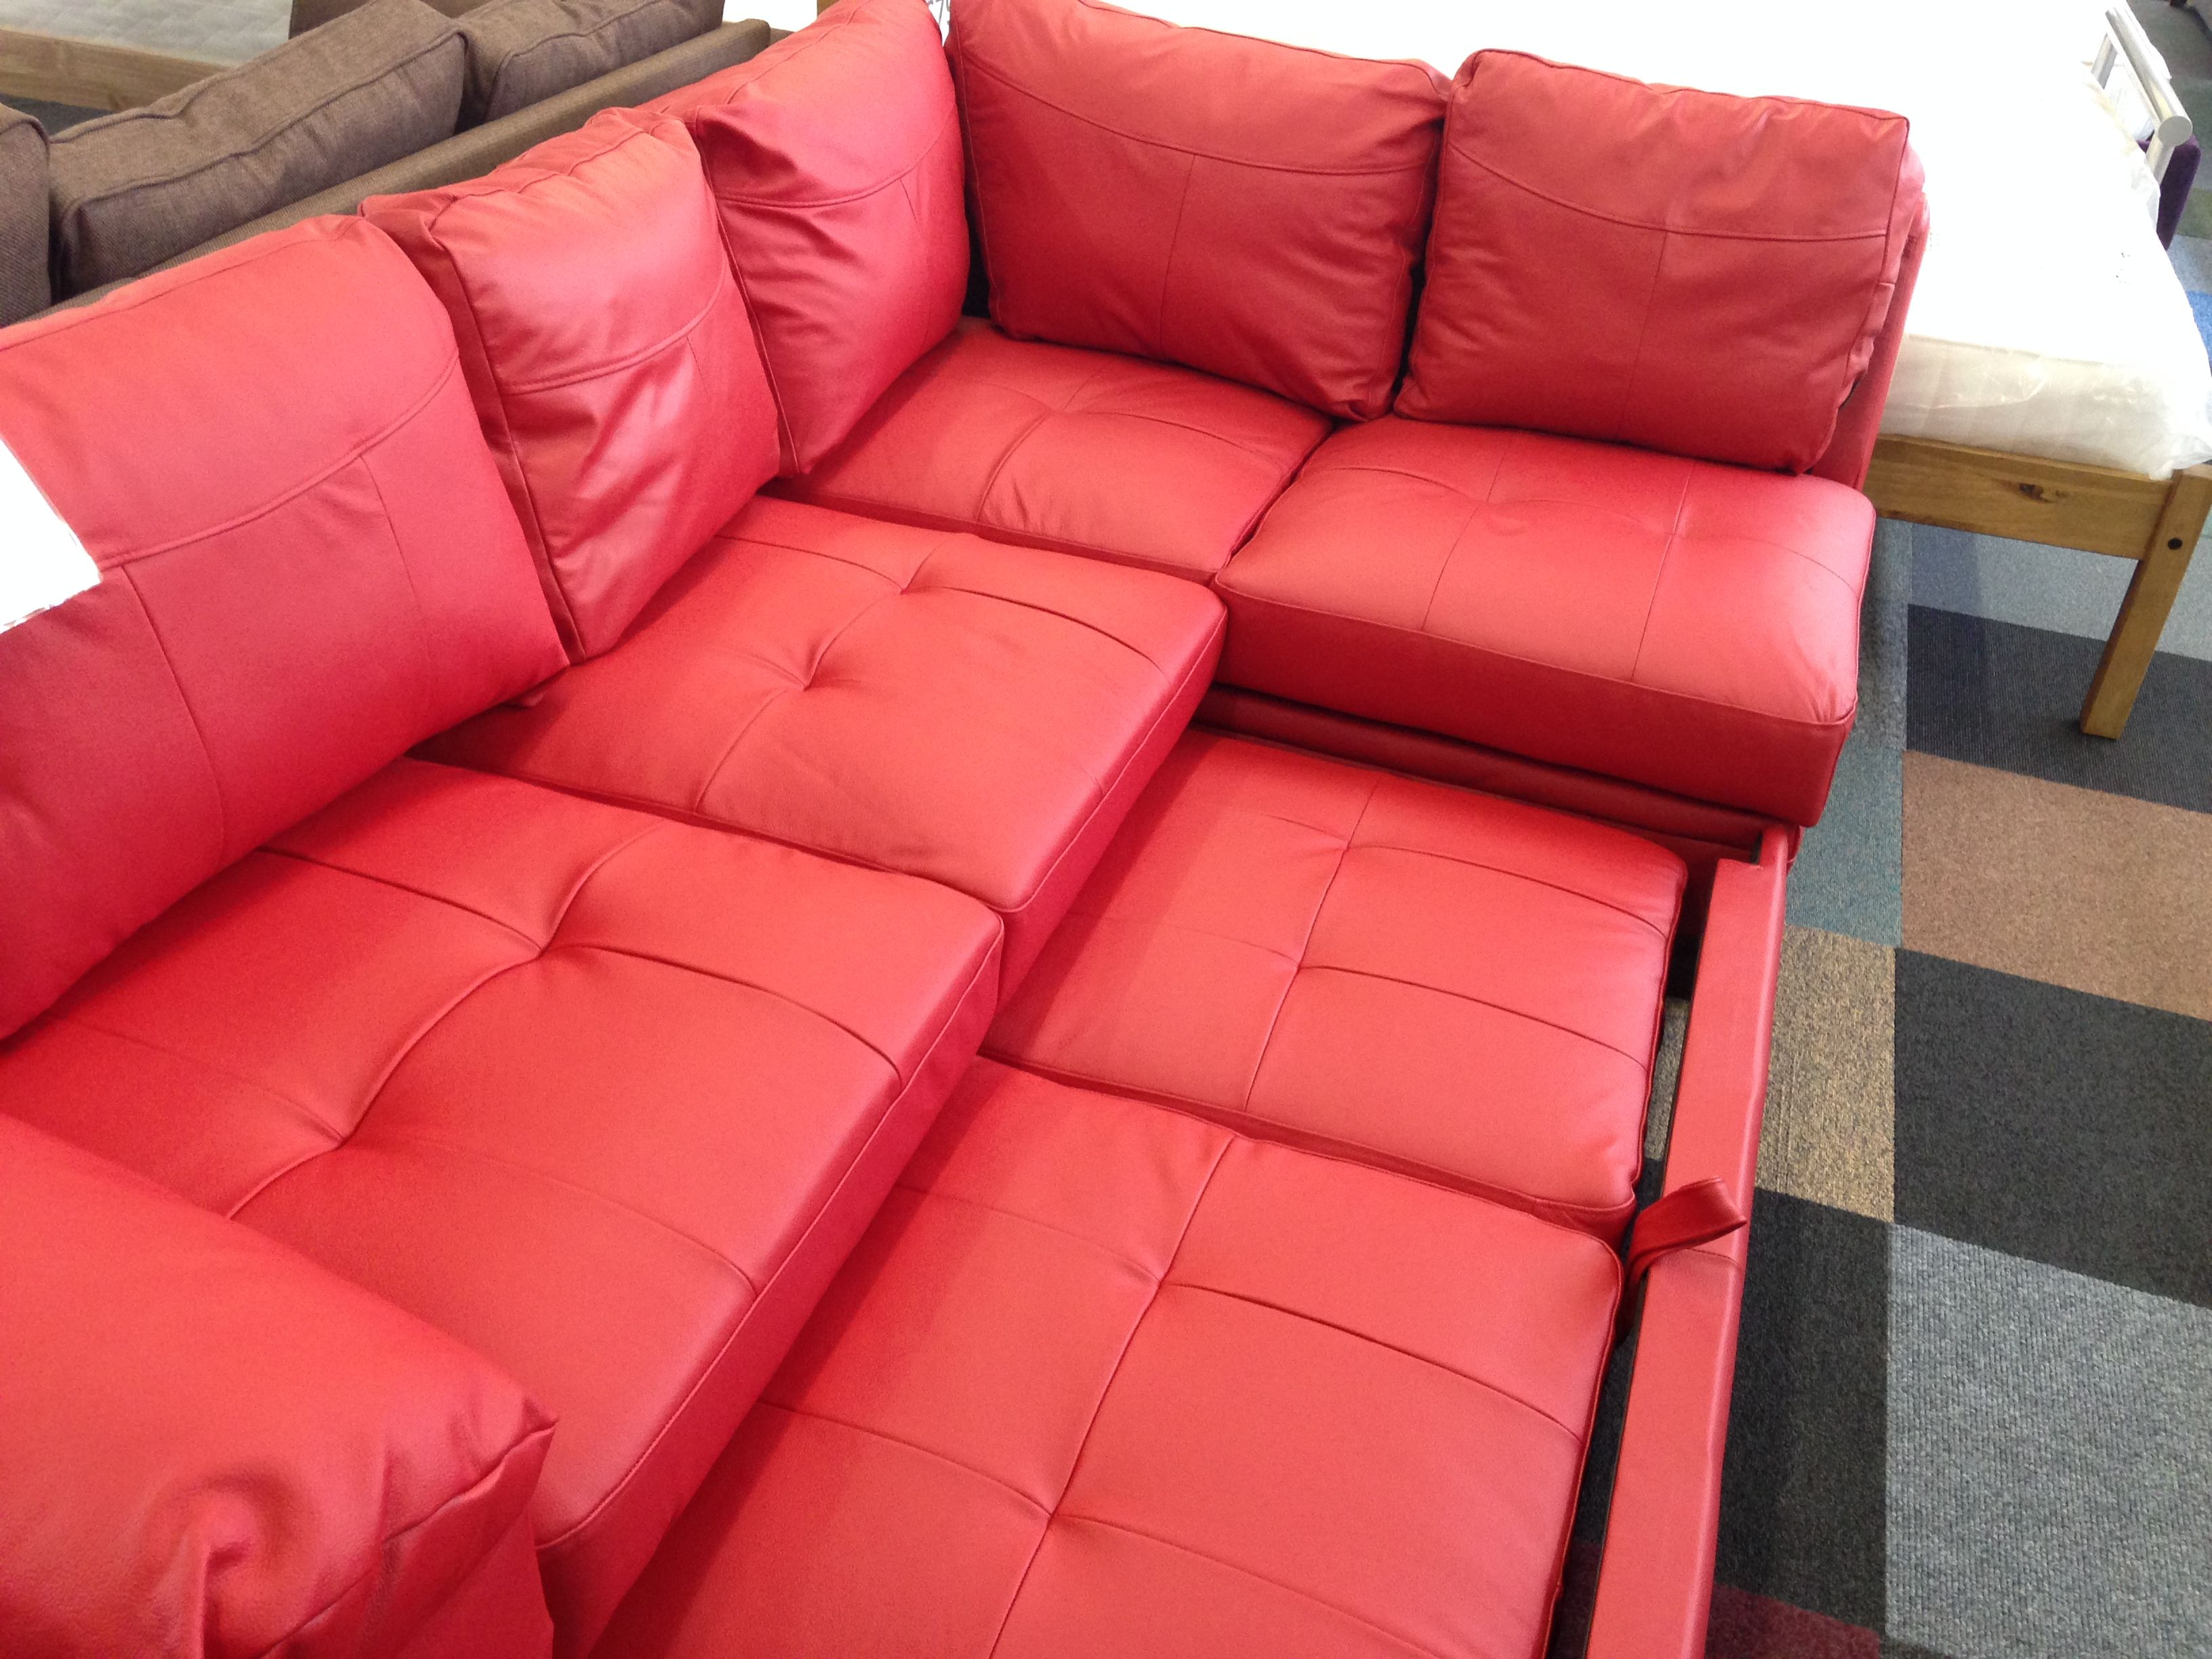 Prime Fernando Leather Right Hand Sofabed Corner Group Red Caraccident5 Cool Chair Designs And Ideas Caraccident5Info